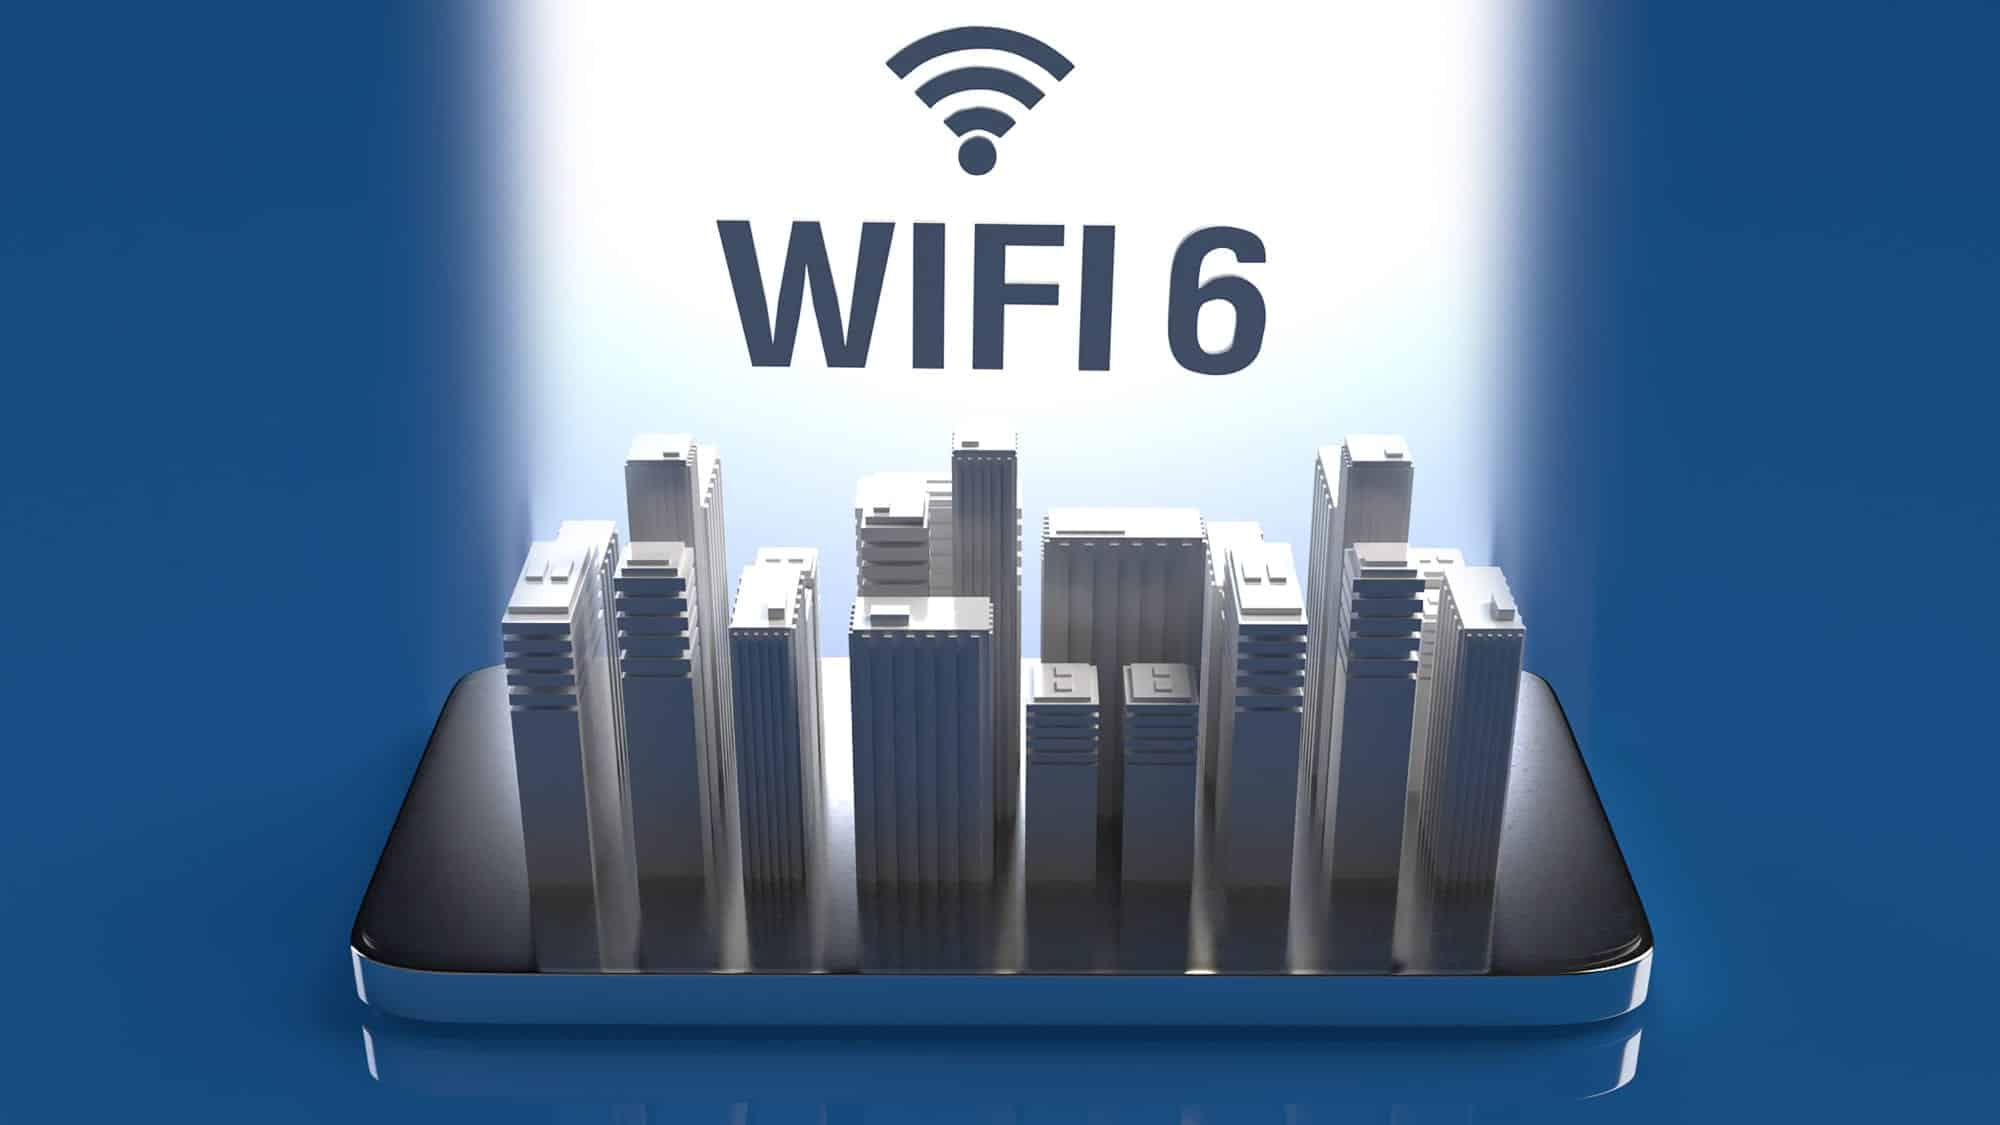 What Can I Expect from the New Wi-Fi 6 (802.11ax) Routers? (Speed, Device Handling & More!)